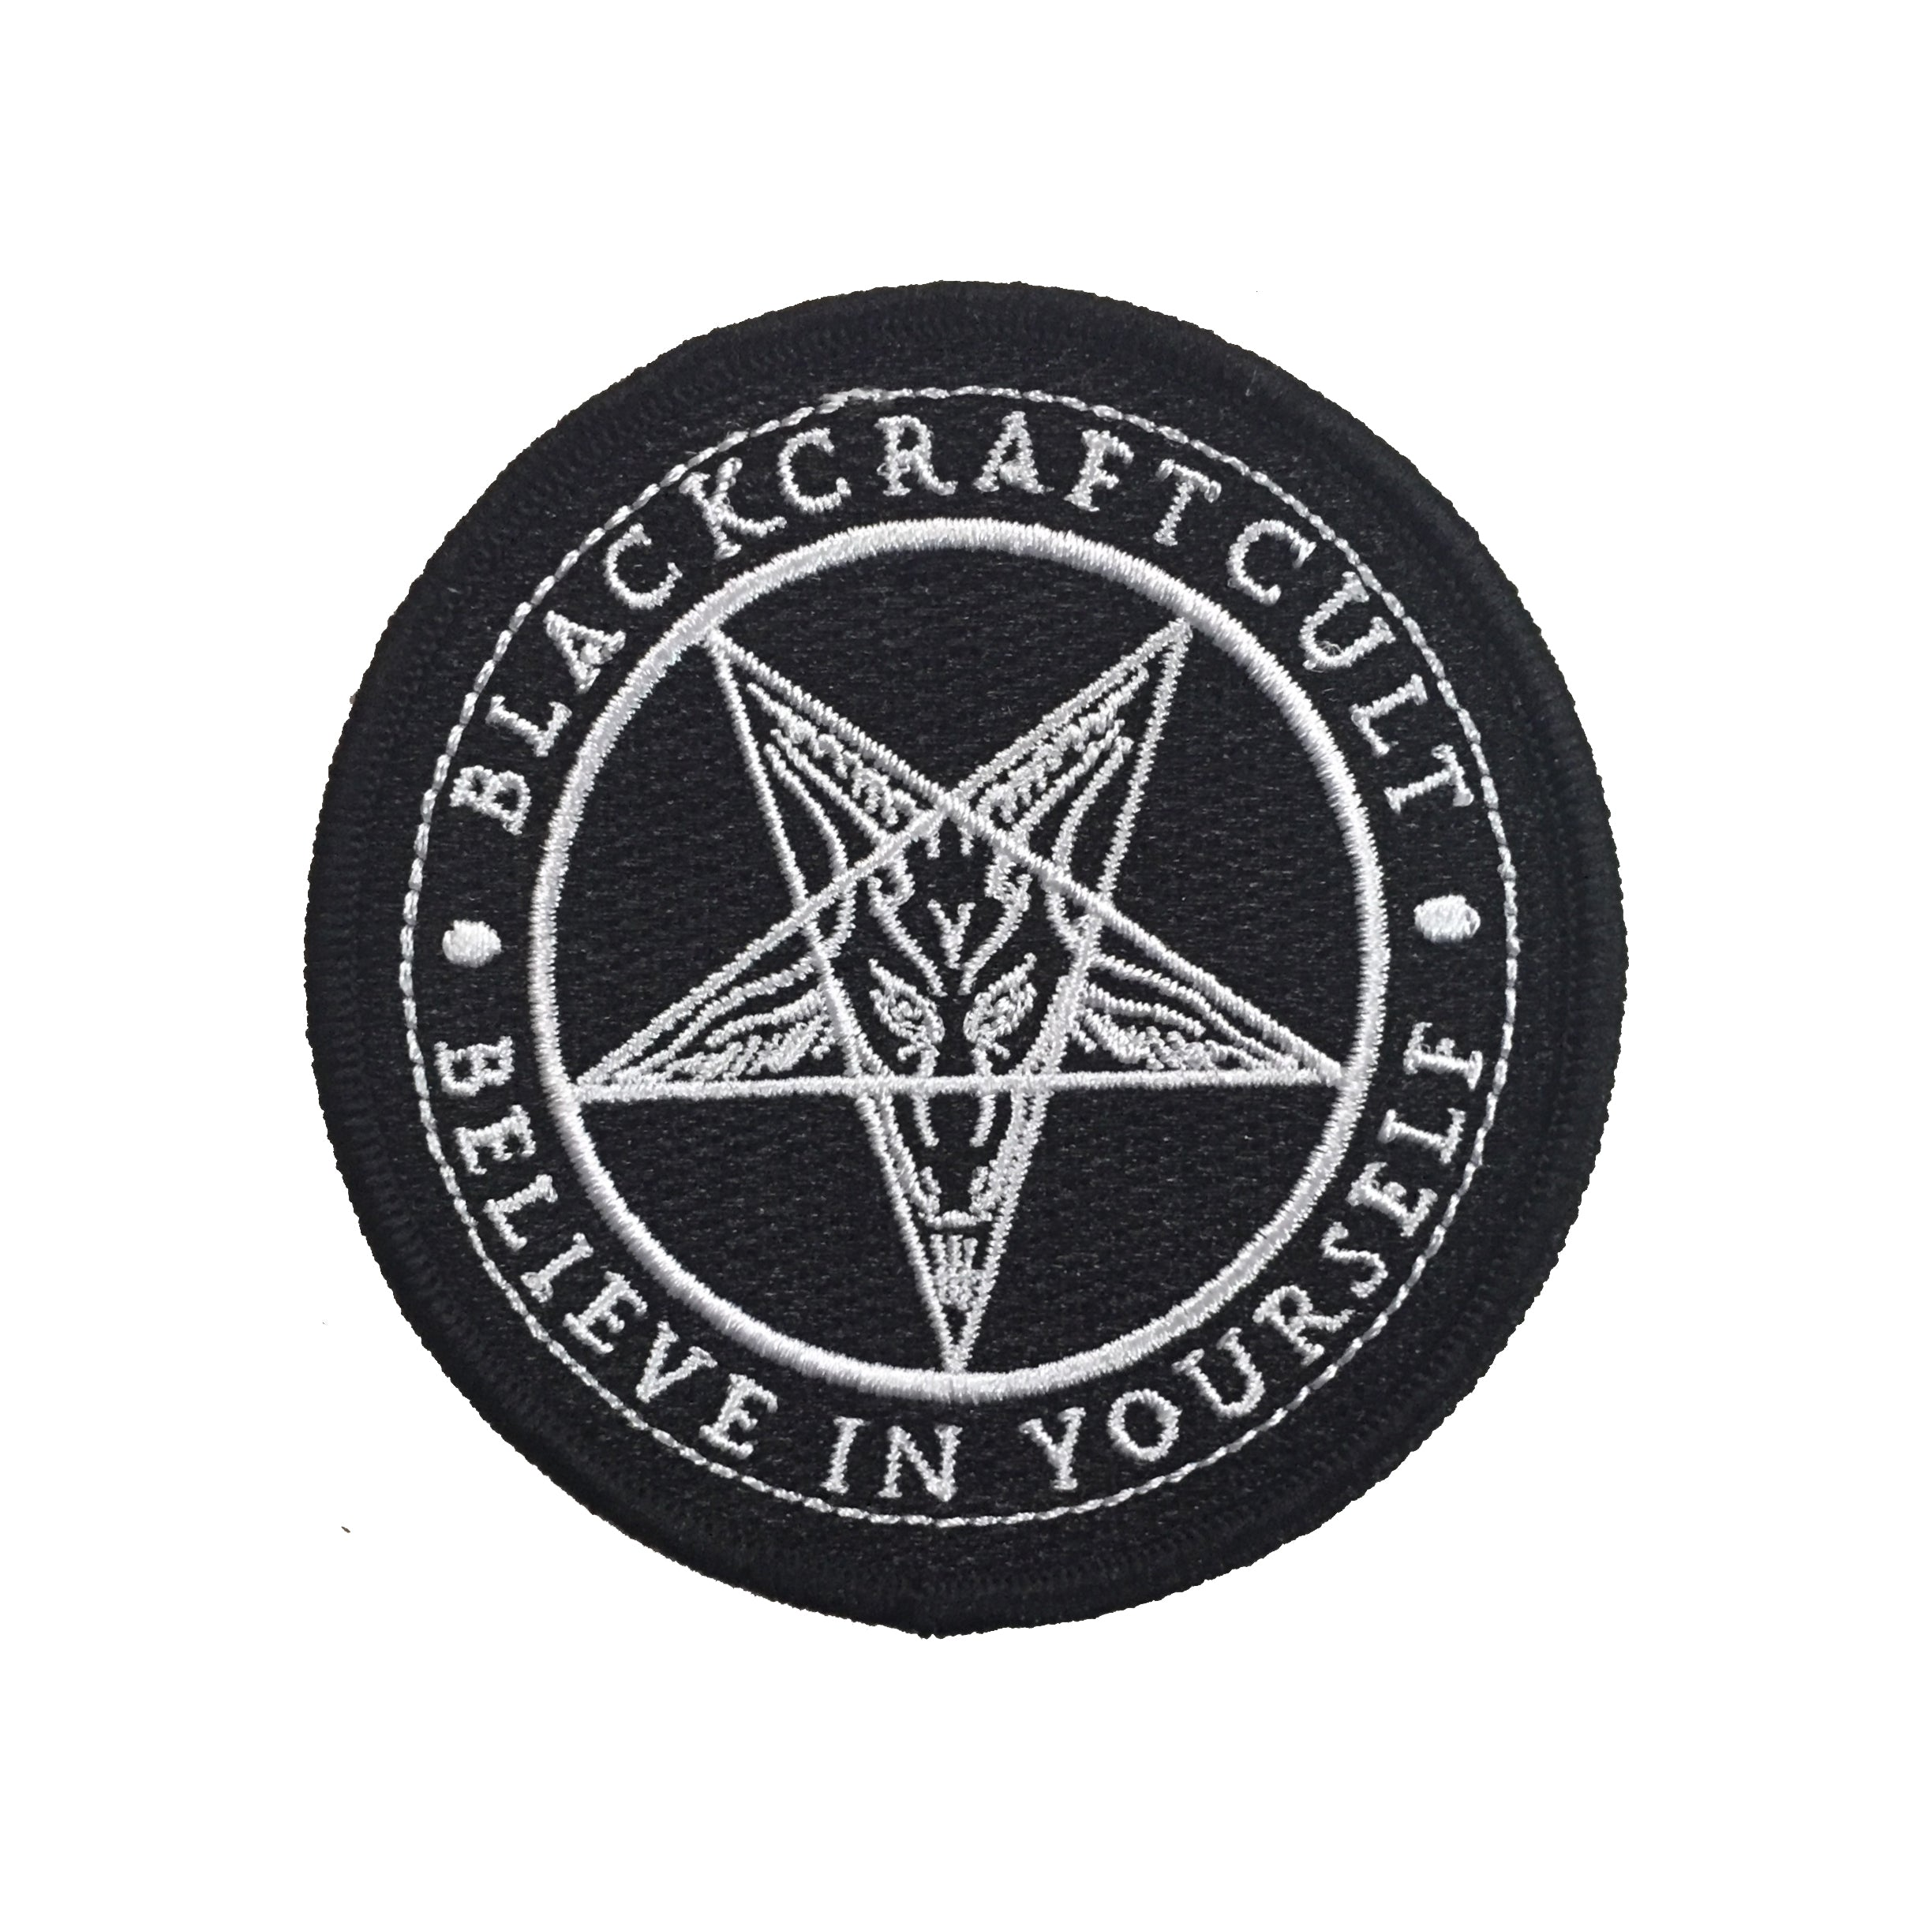 Believe In Yourself Embroidered Patch Blackcraft Cult